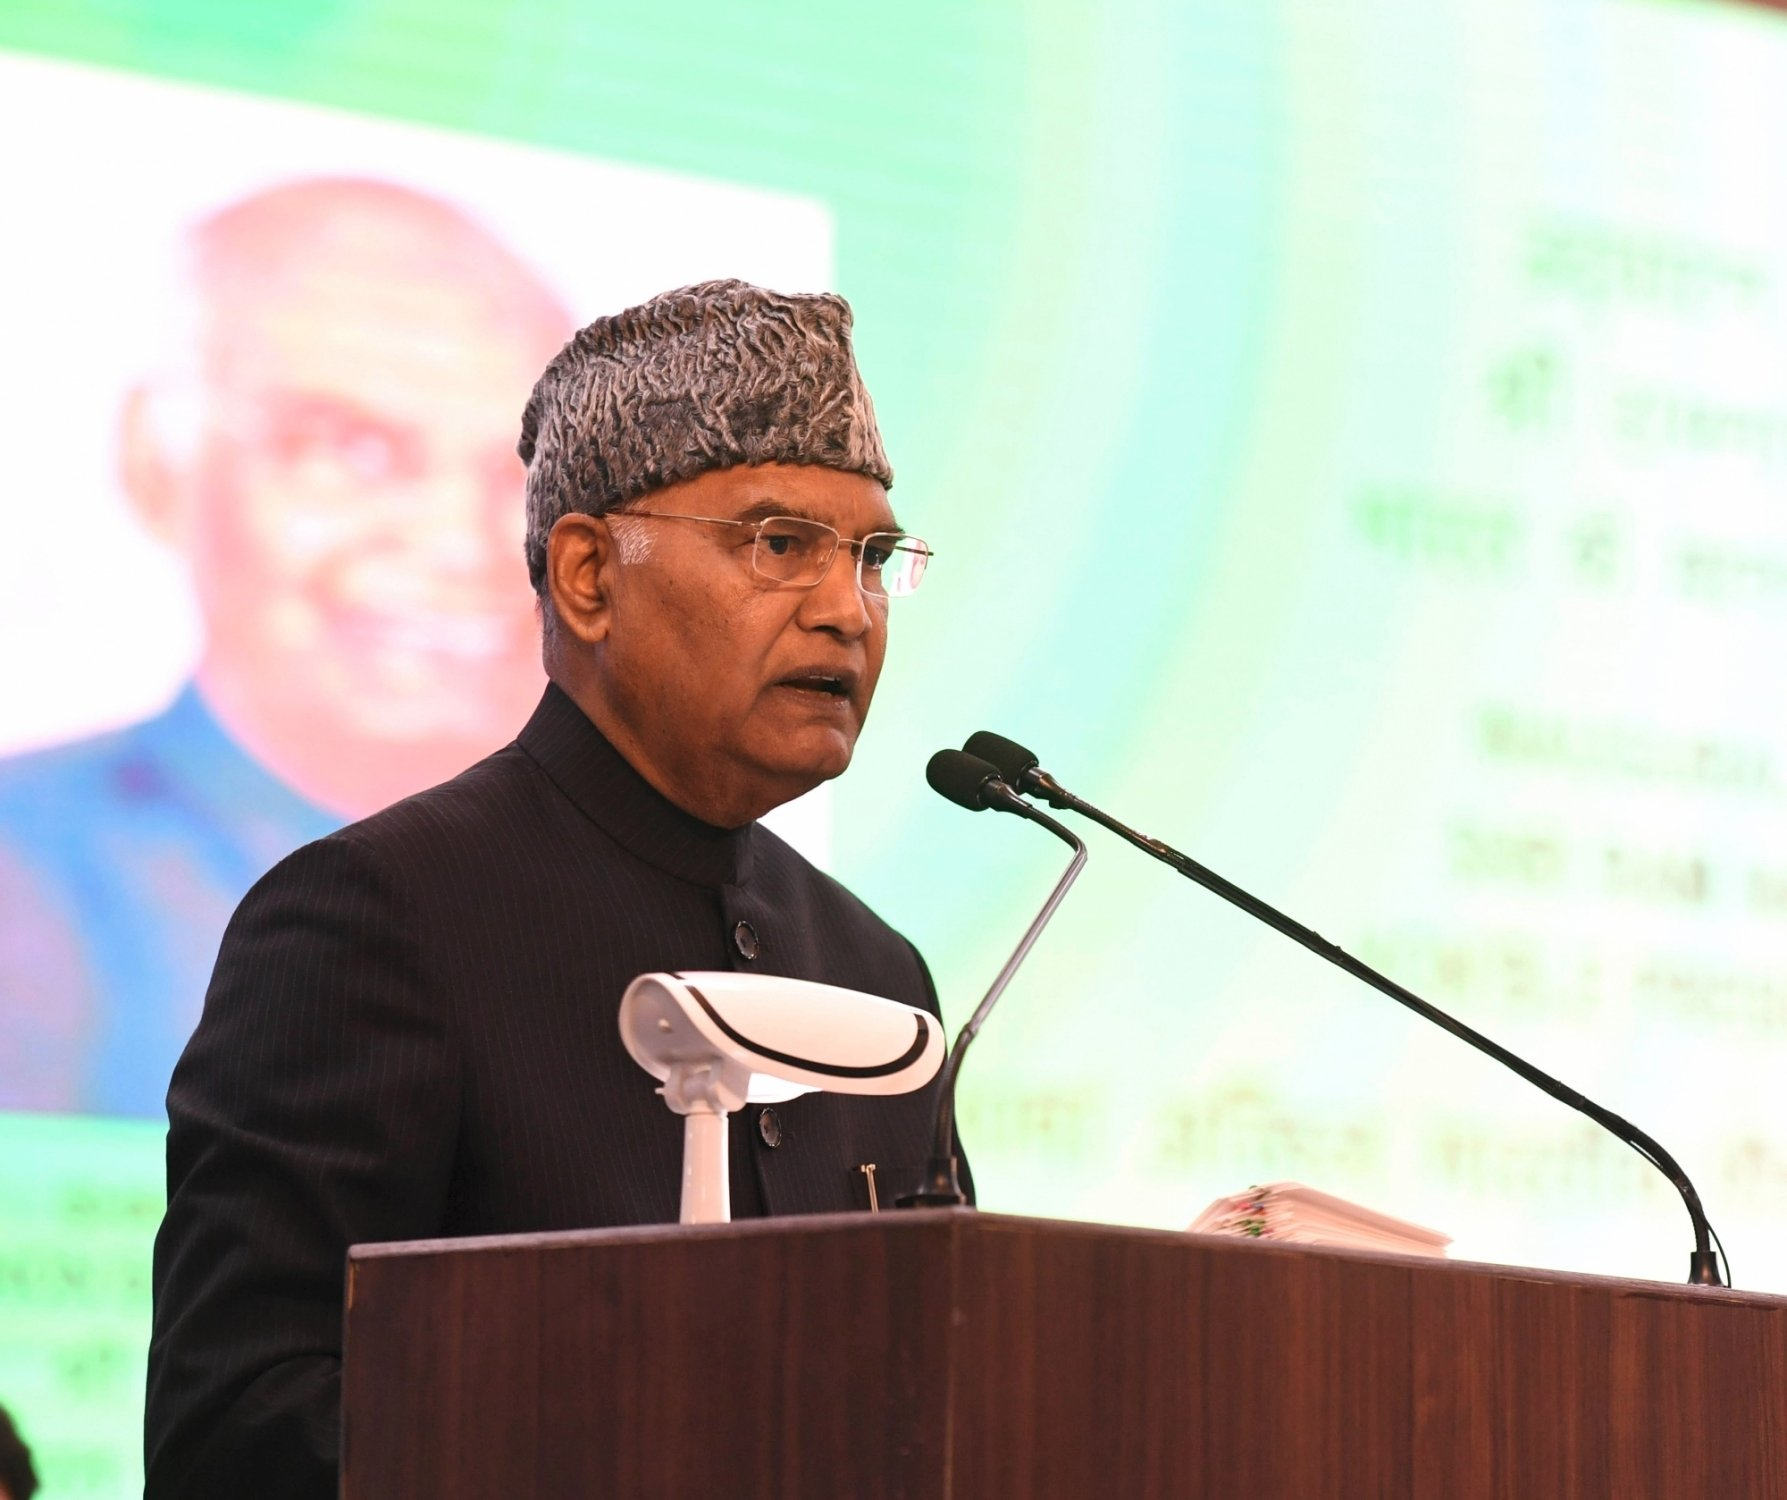 President Ram Nath Kovind referred to AIIMS